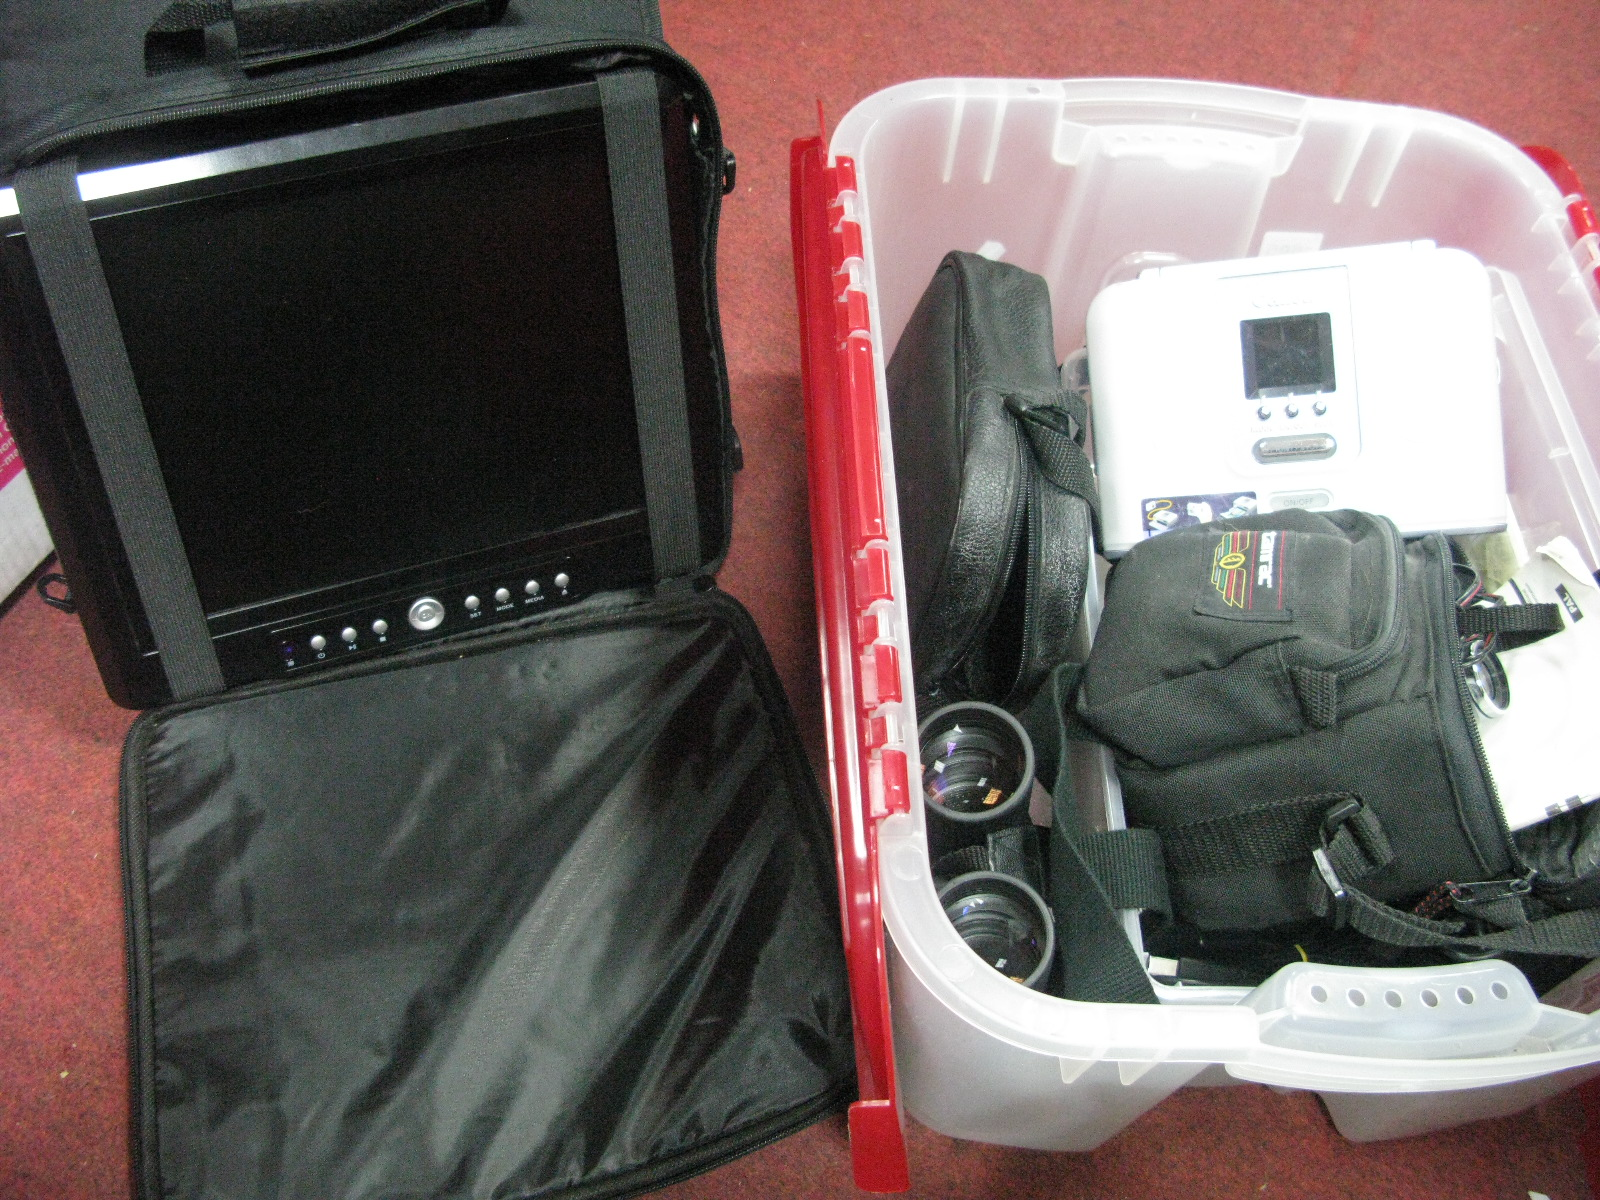 Lot 1095 - Portable DVD Player, Canon digital video camcorder, Opticron 8 x 42 BGA Binoculars, Canon Selphy